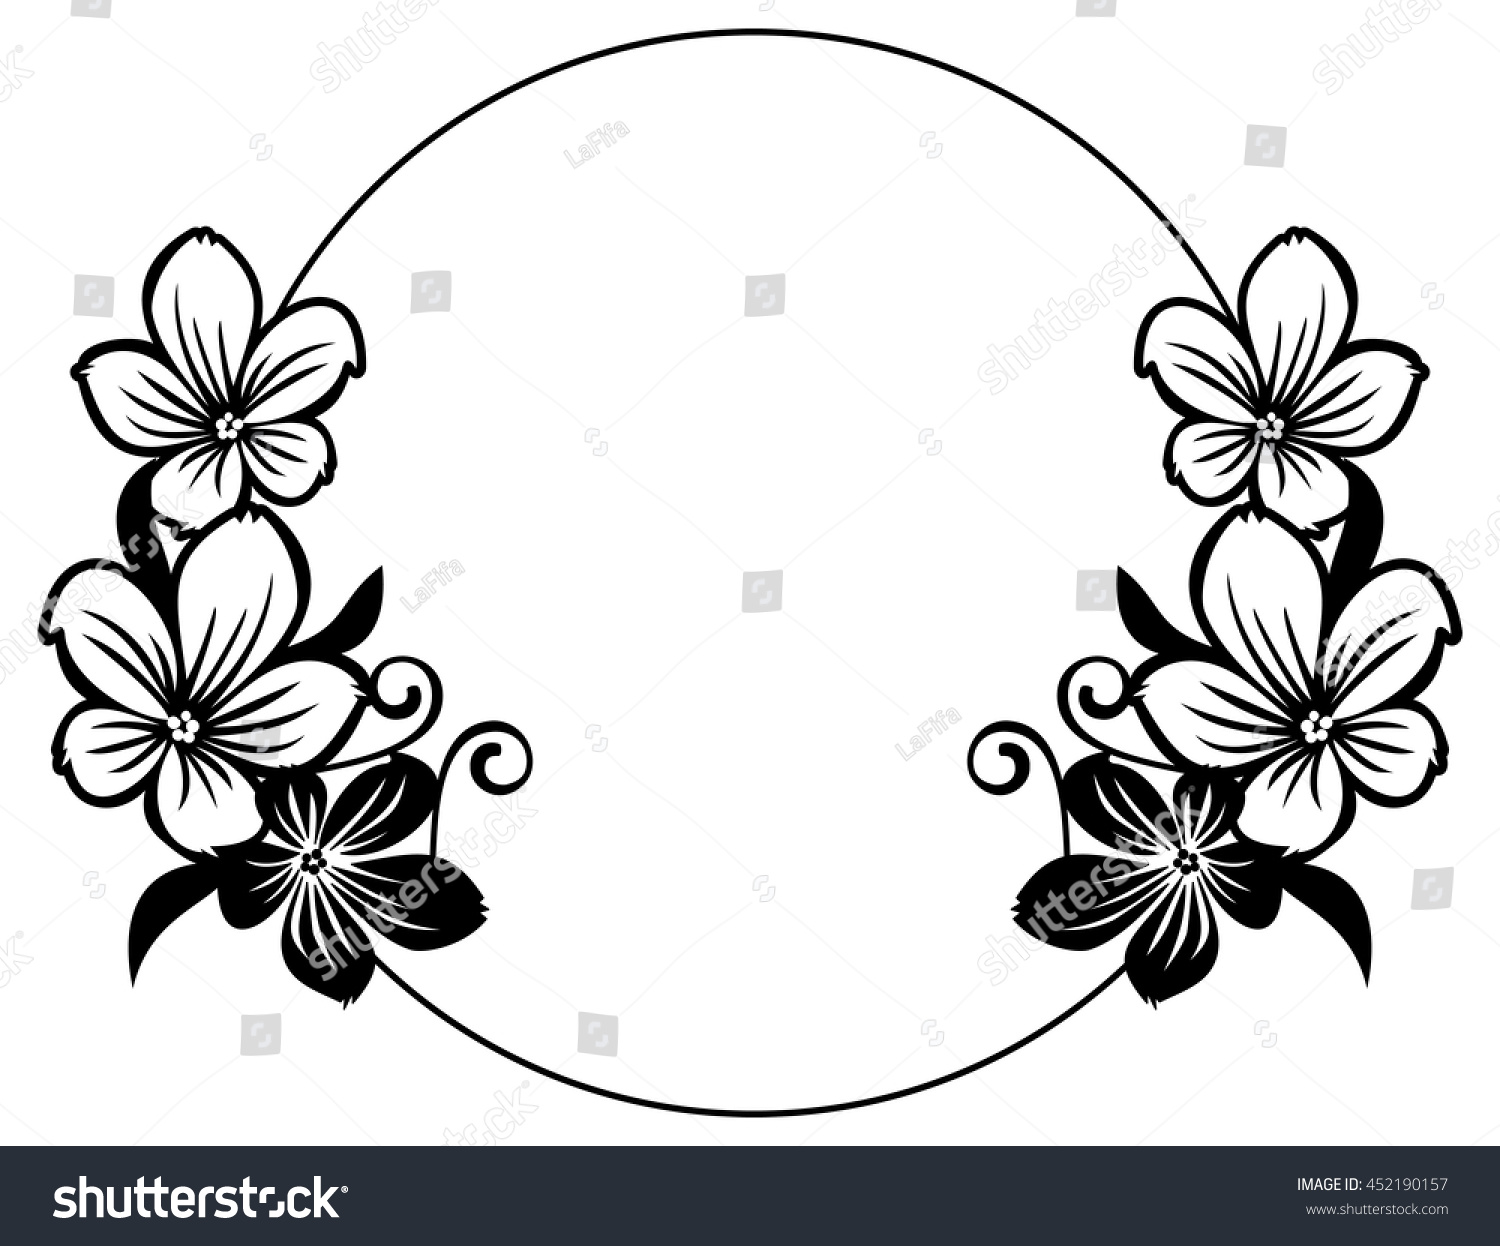 black and white abstract flower designs wwwimgkidcom